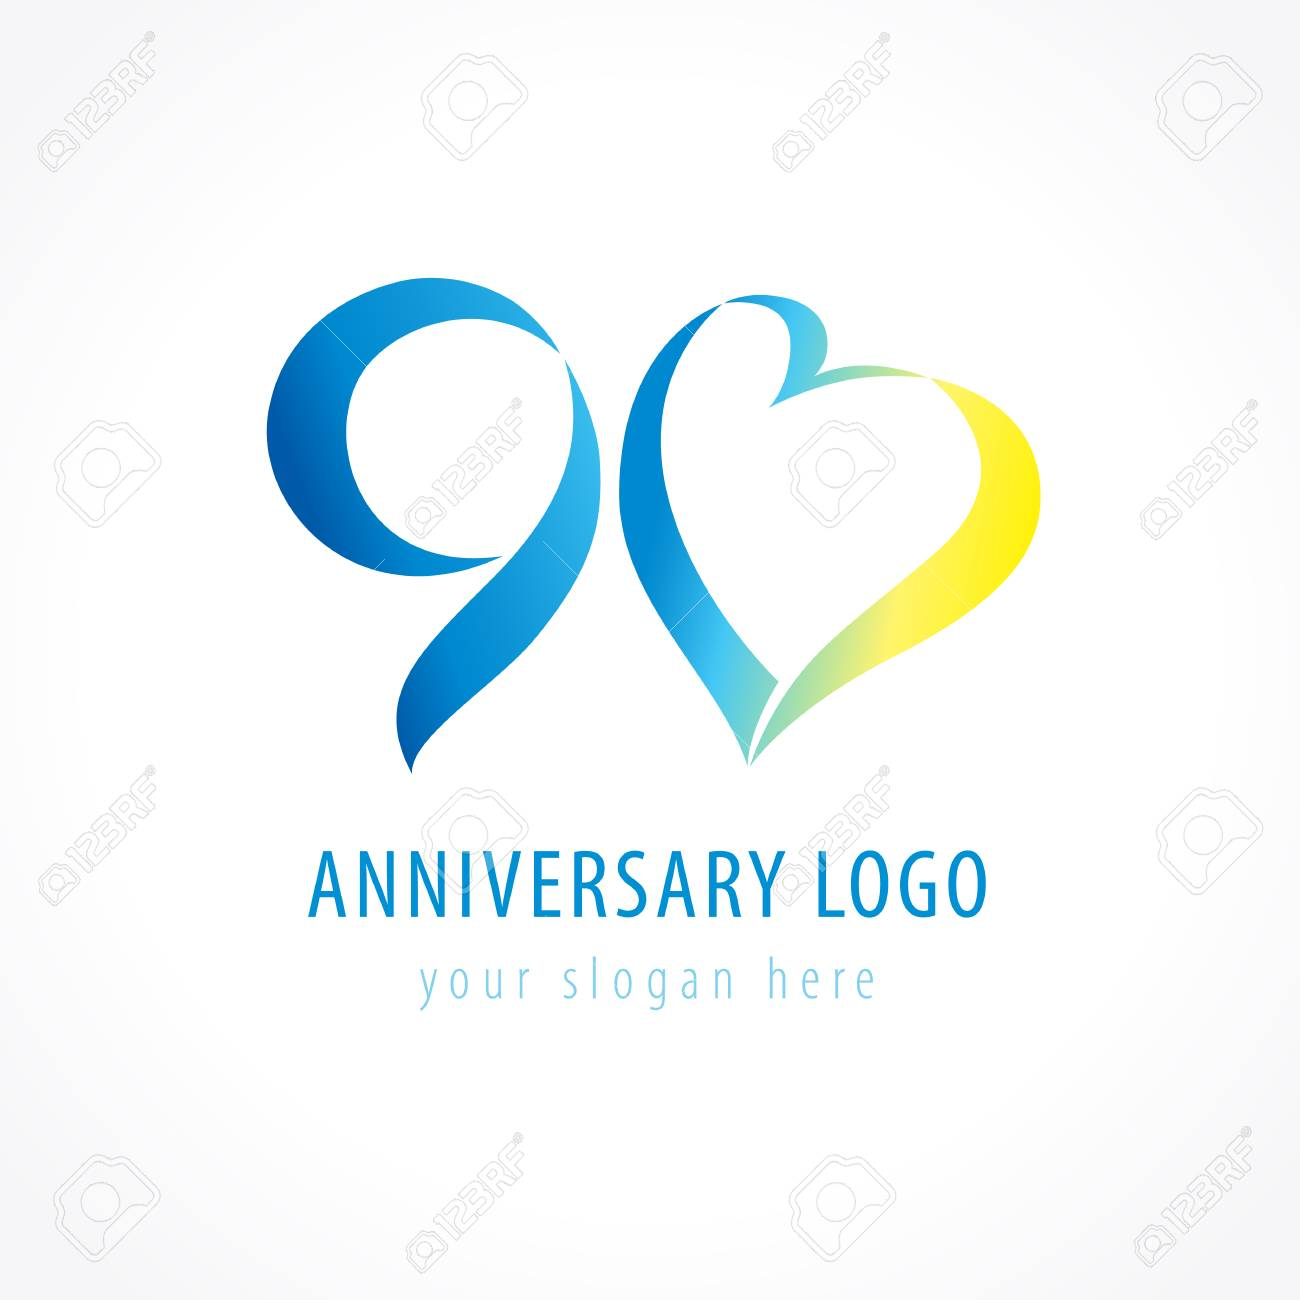 Anniversary 90 years old hearts celebrating vector digit logo anniversary 90 years old hearts celebrating vector digit logo birthday greetings with framed tape heart bookmarktalkfo Image collections